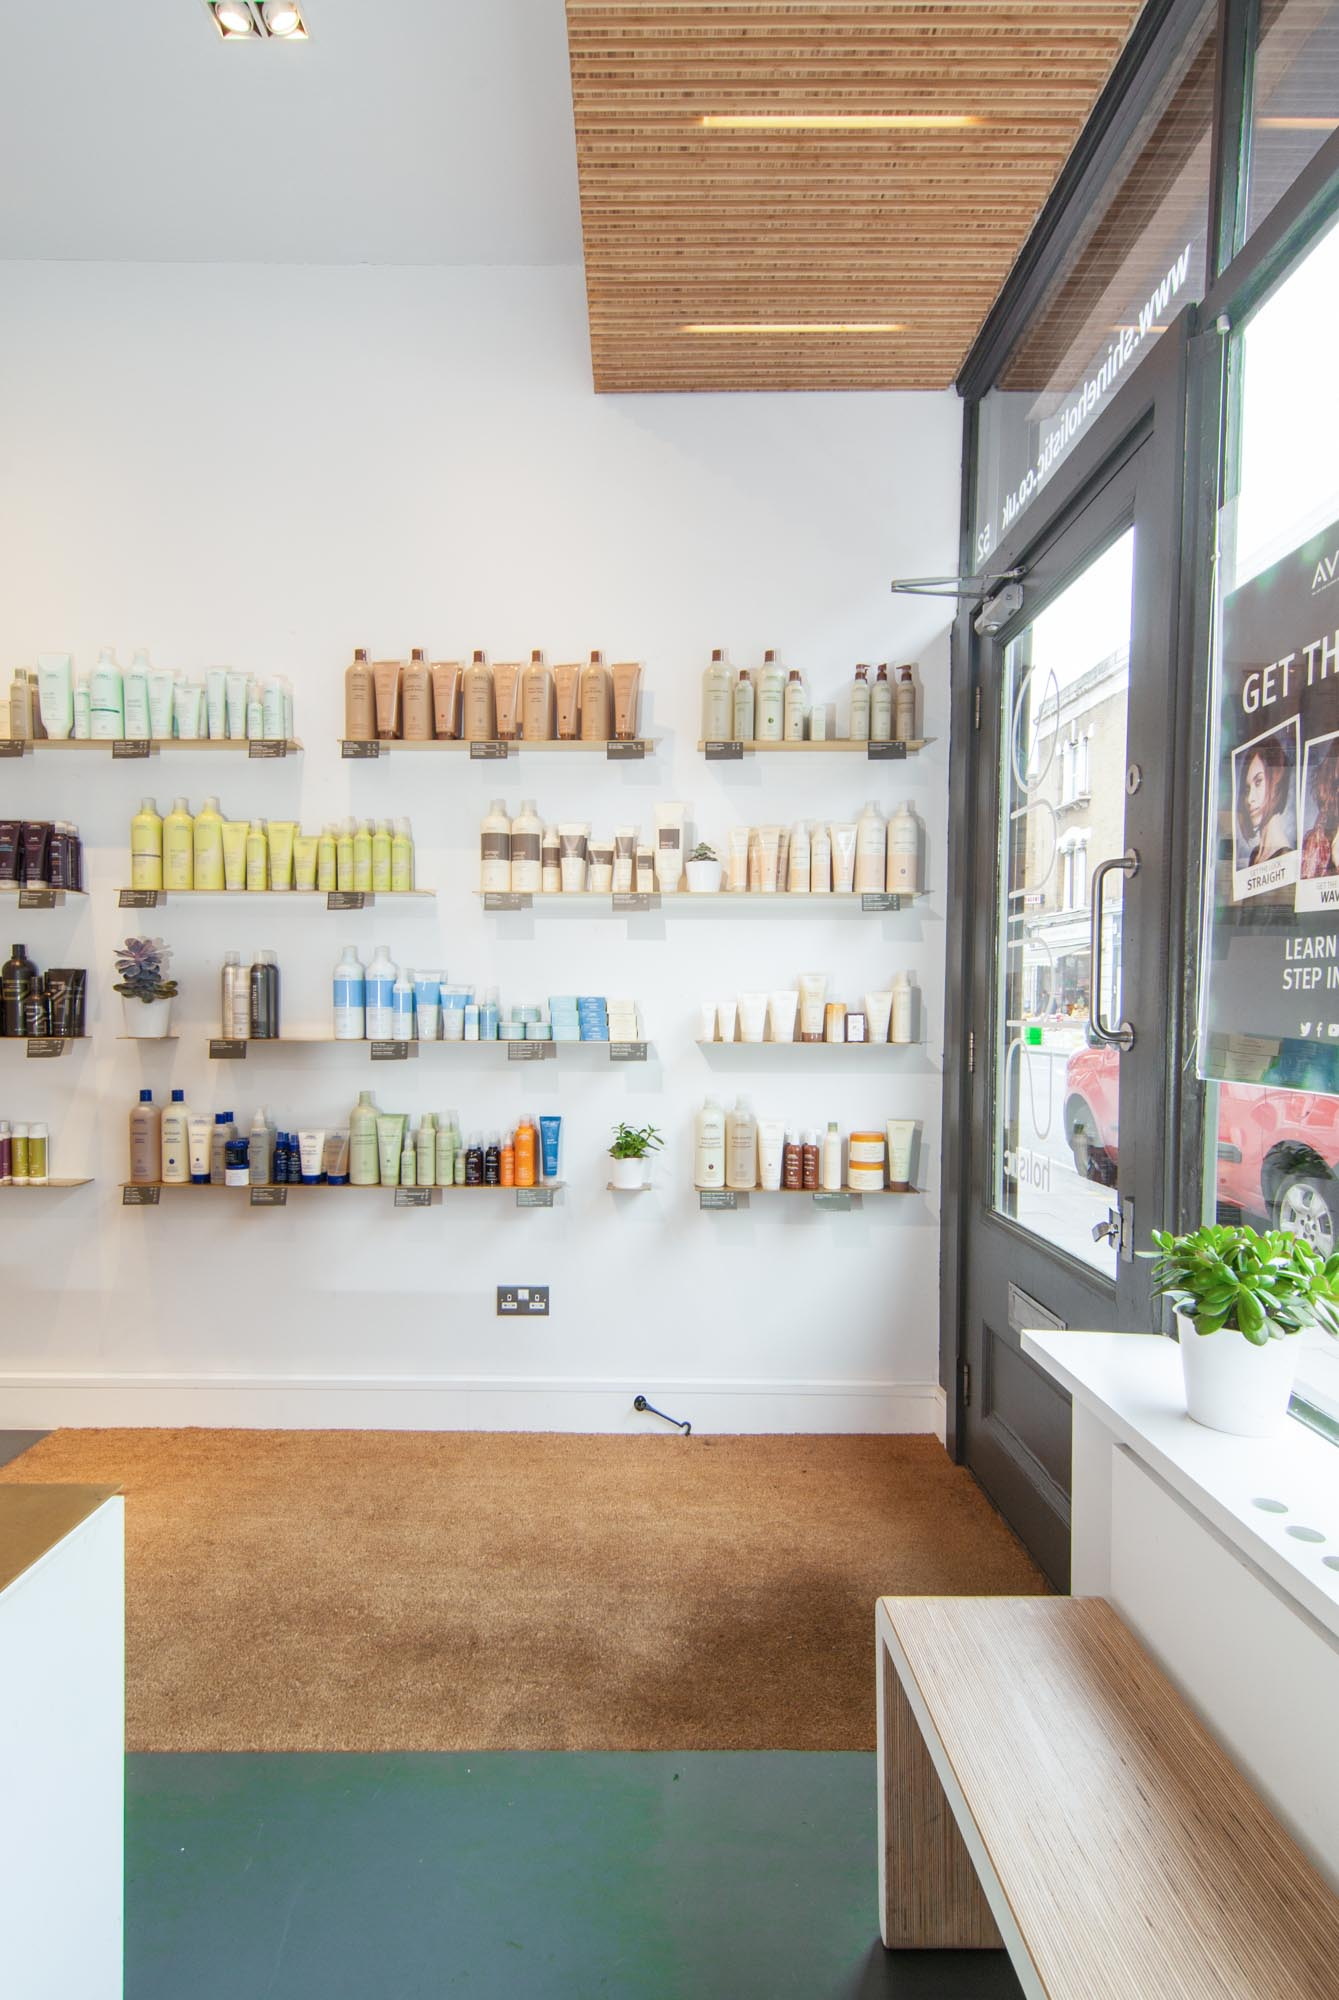 Brass shelving by the entrance of Shine Holistic Hairdresser salon.